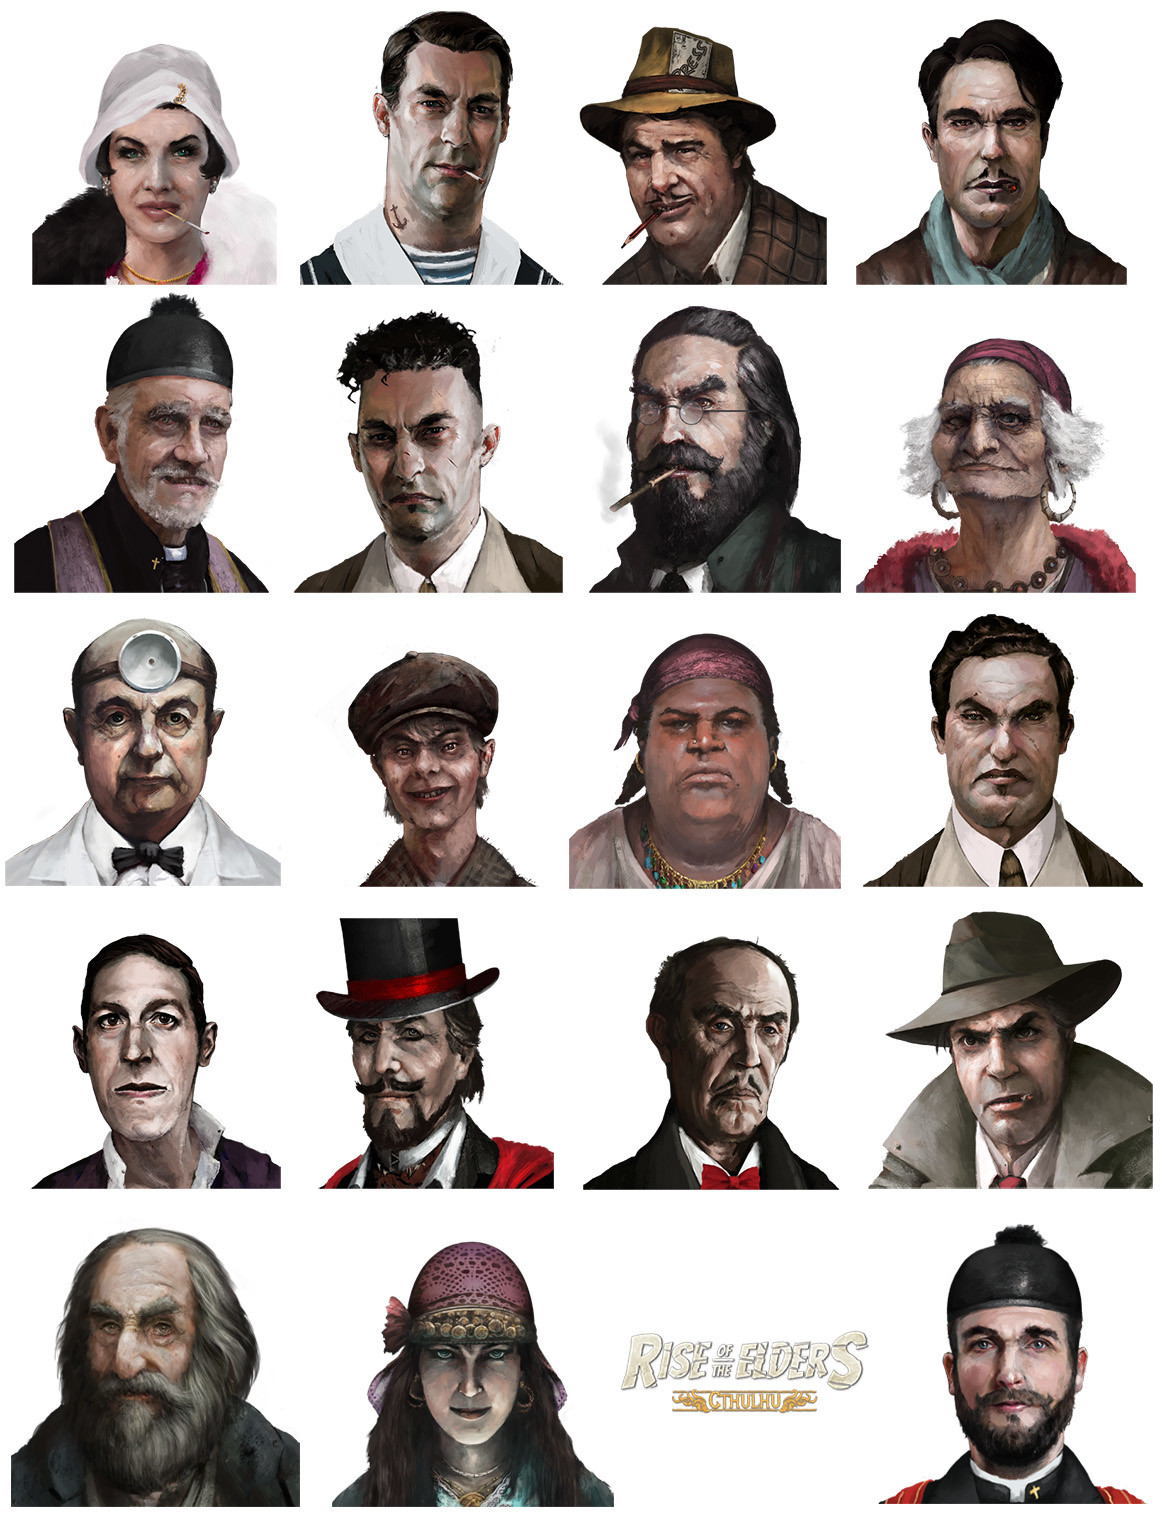 Mug shots (Rise of the Elders : Cthulhu)